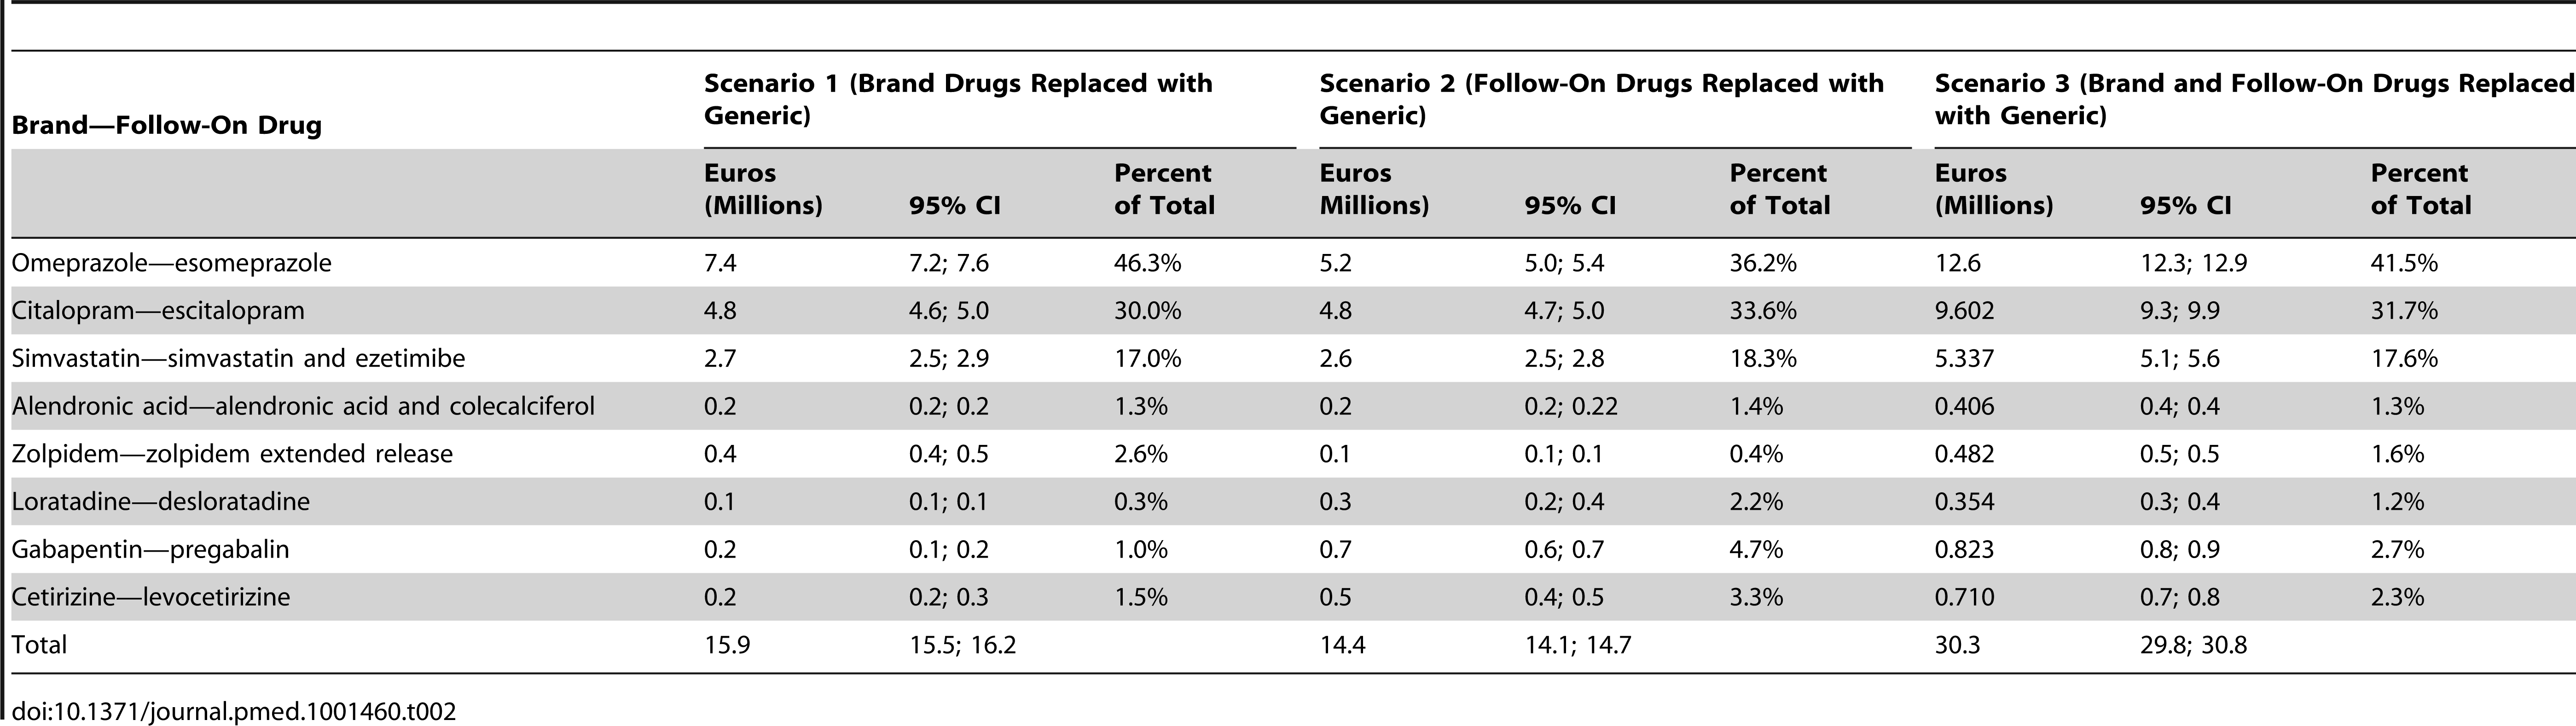 """""""Extra costs"""" in millions of Euros, 95% CIs, and percent of total prescriptions for three scenarios."""